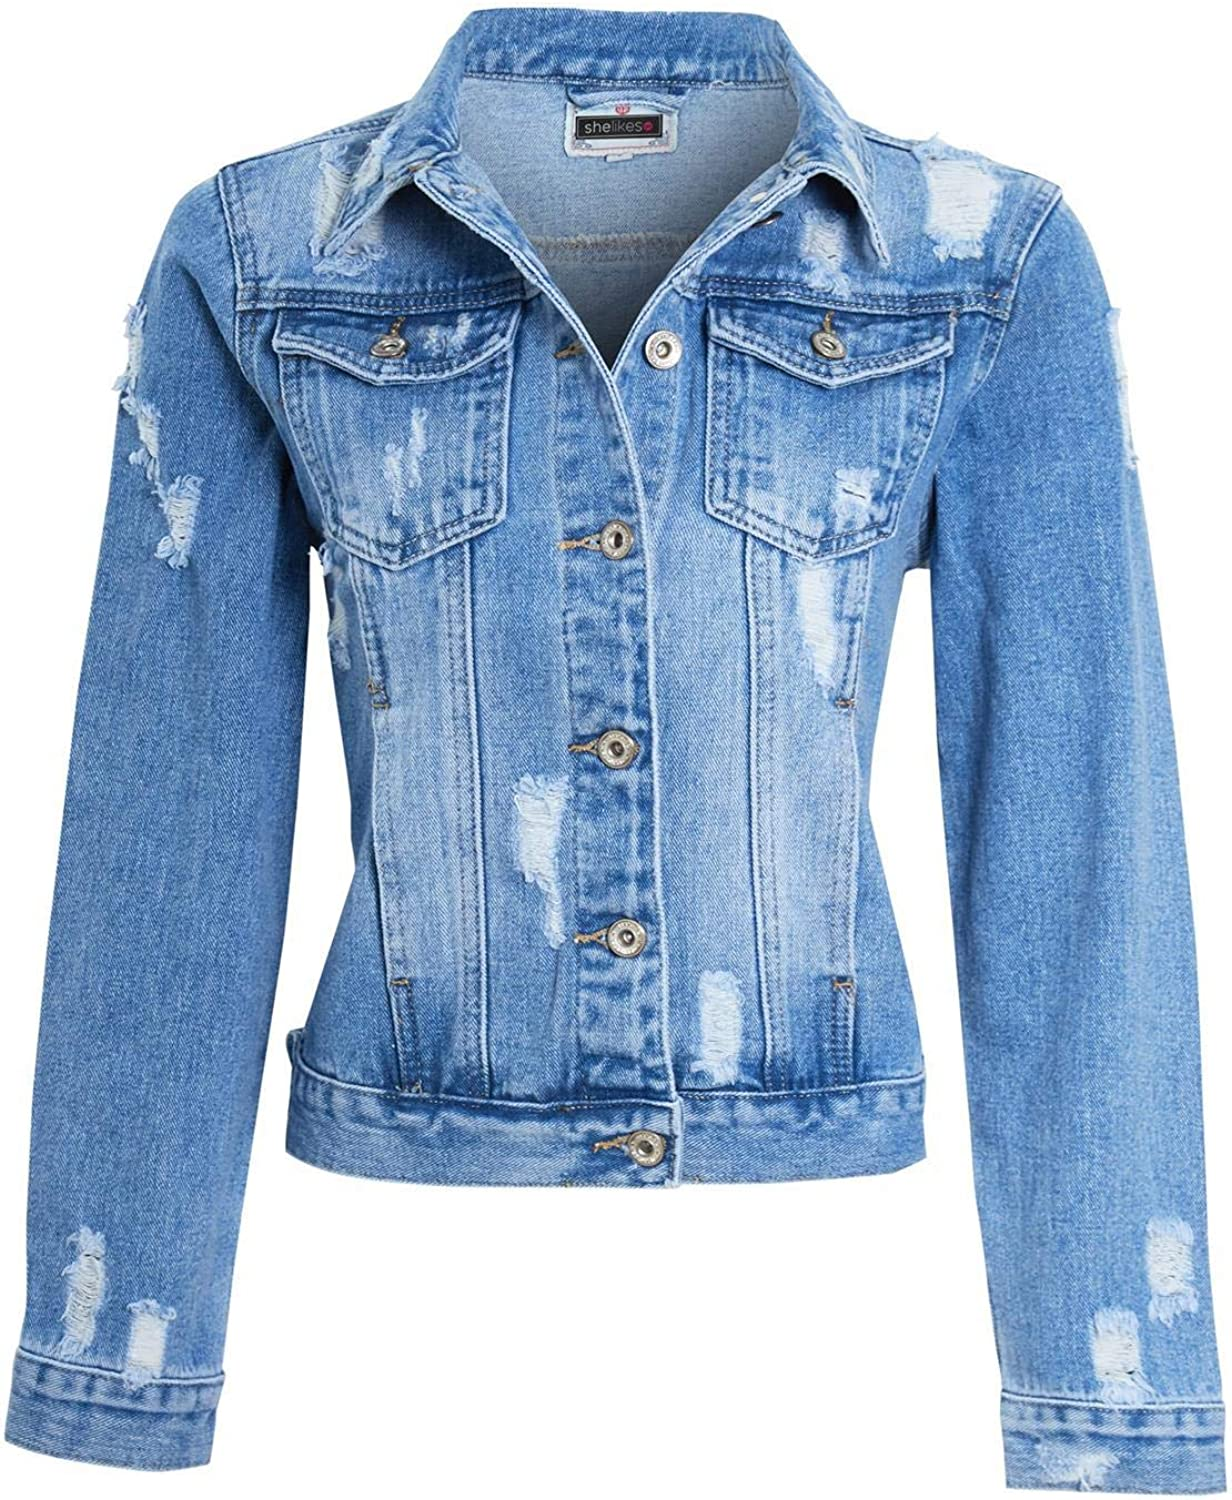 shelikes Womens Denim Jacket Ladies Blue Ripped Distressed Button Up Vintage Wash Size 8-16